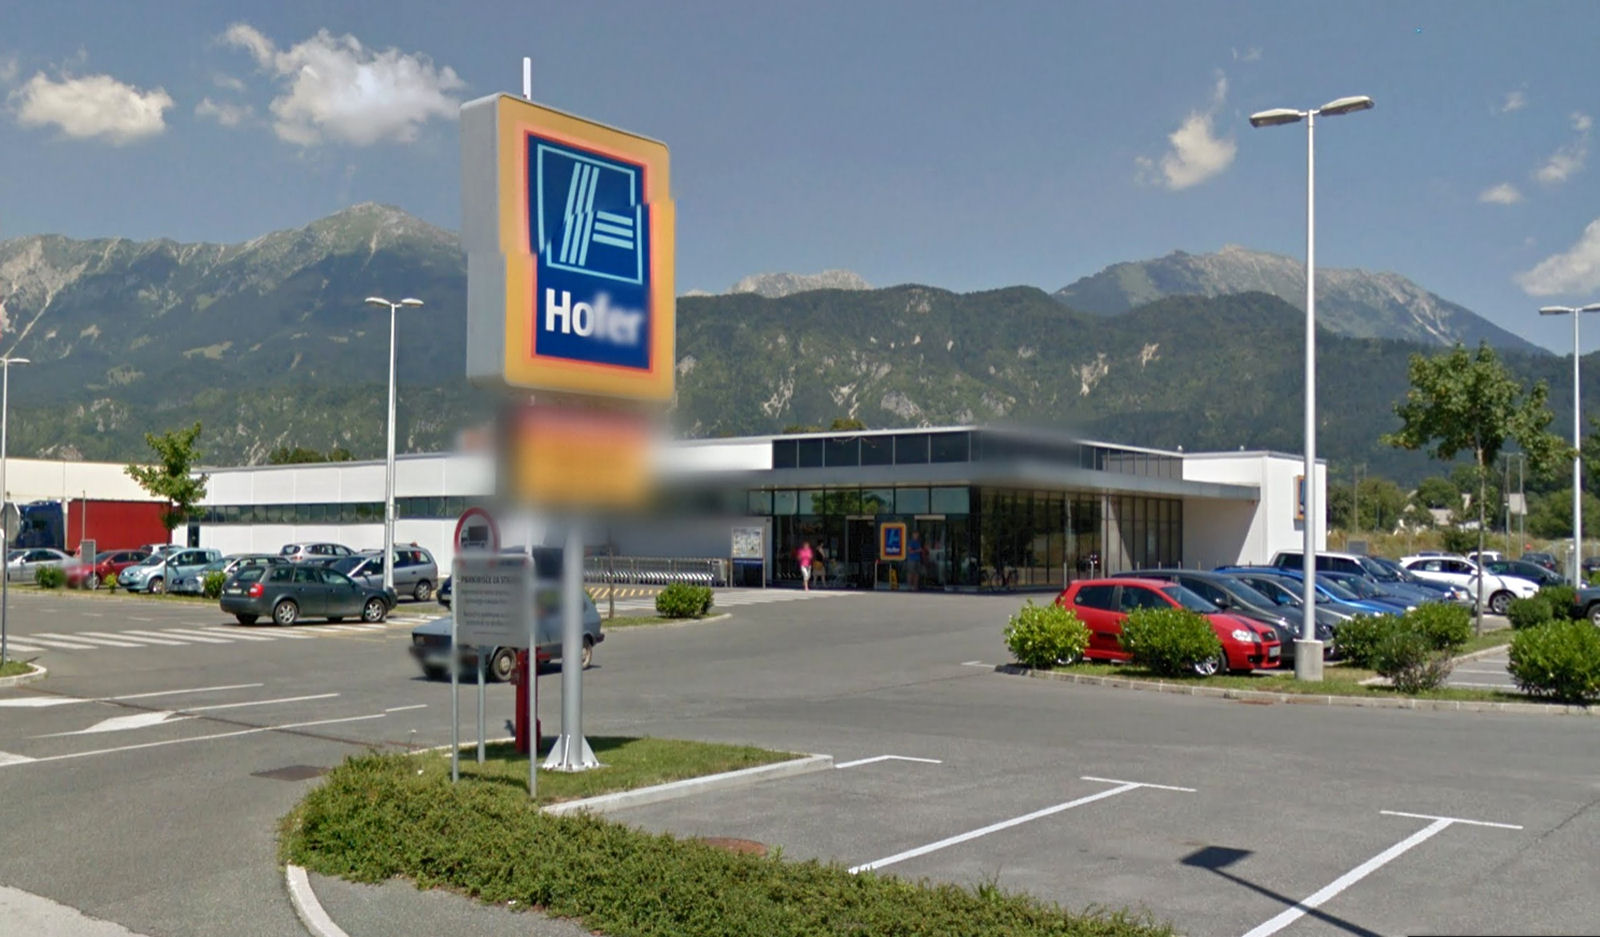 Hofer supermarket in Lesce, Slovenia